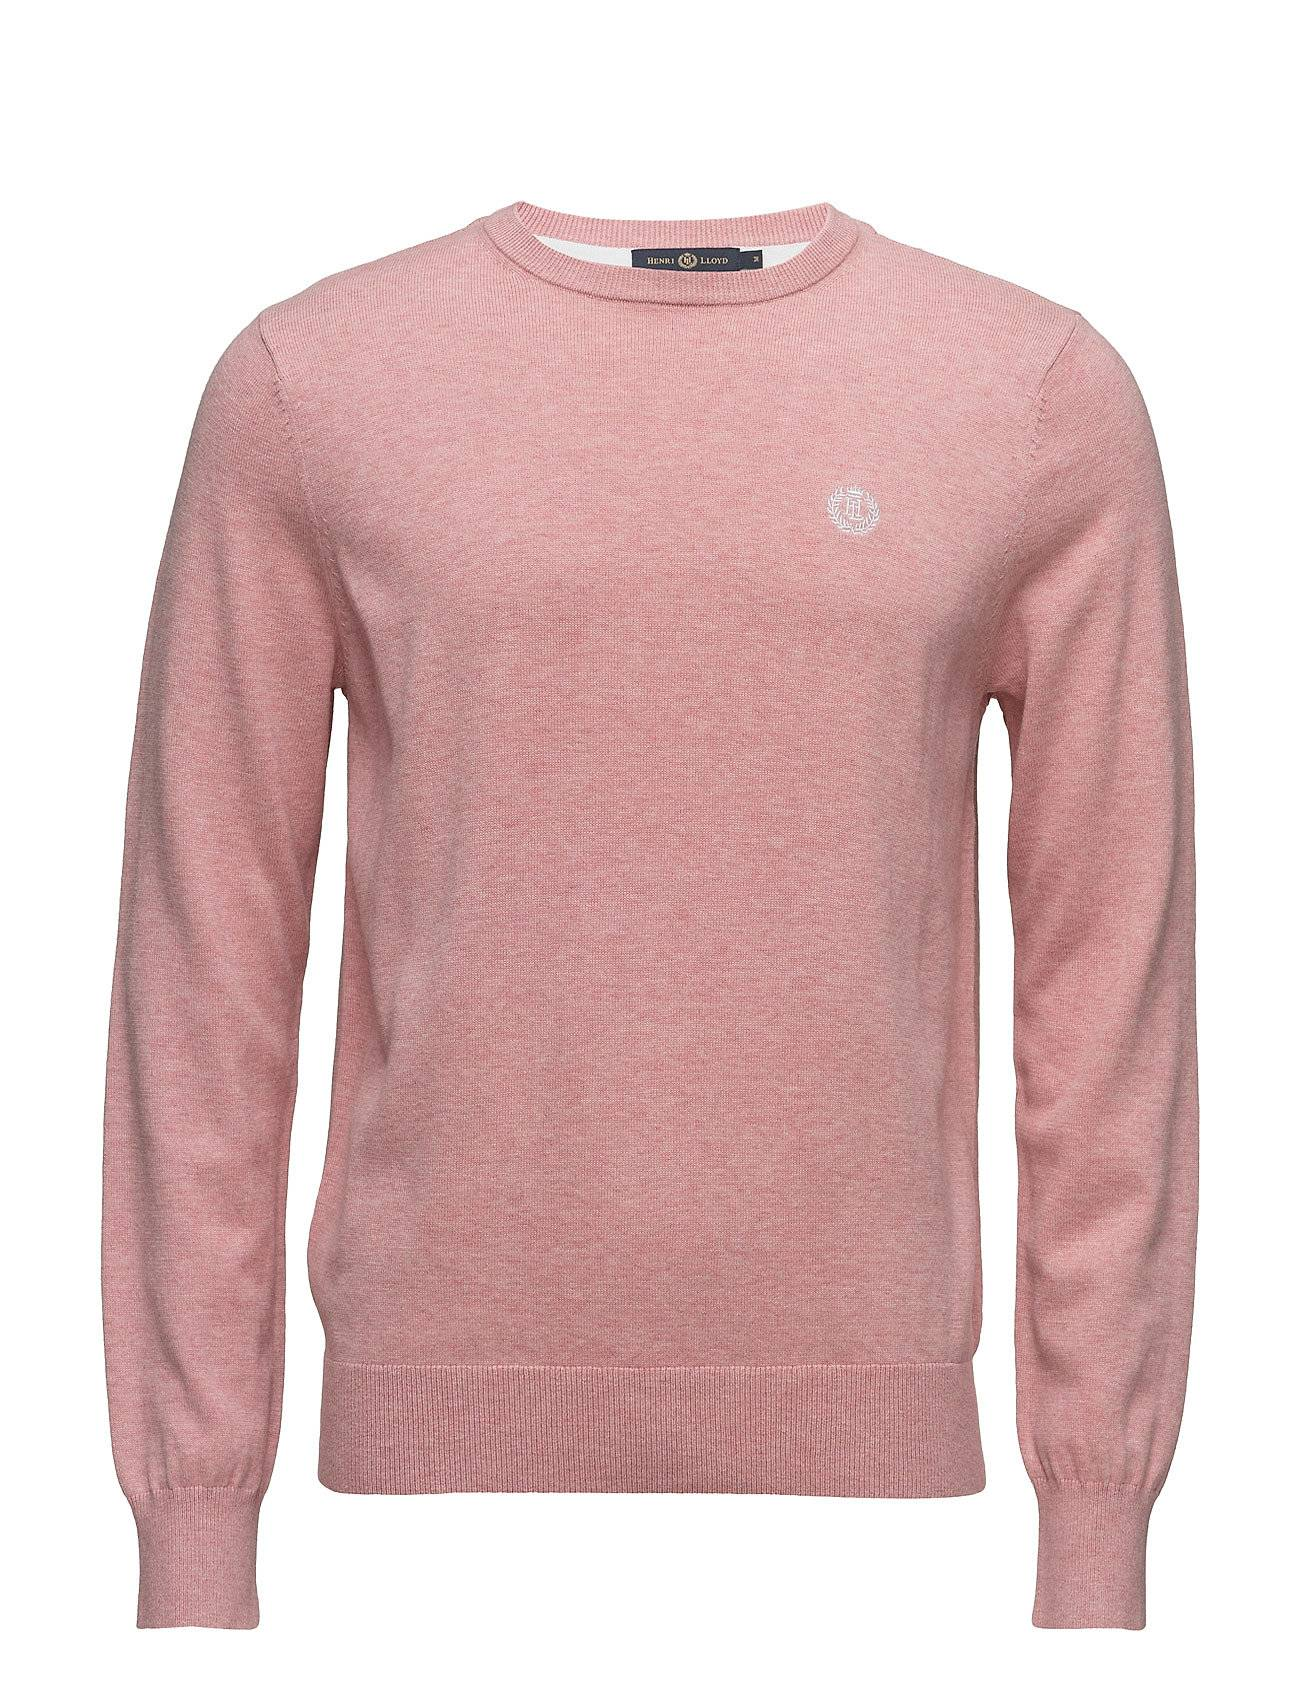 Henri Lloyd Moray Regular Crew Neck Knit